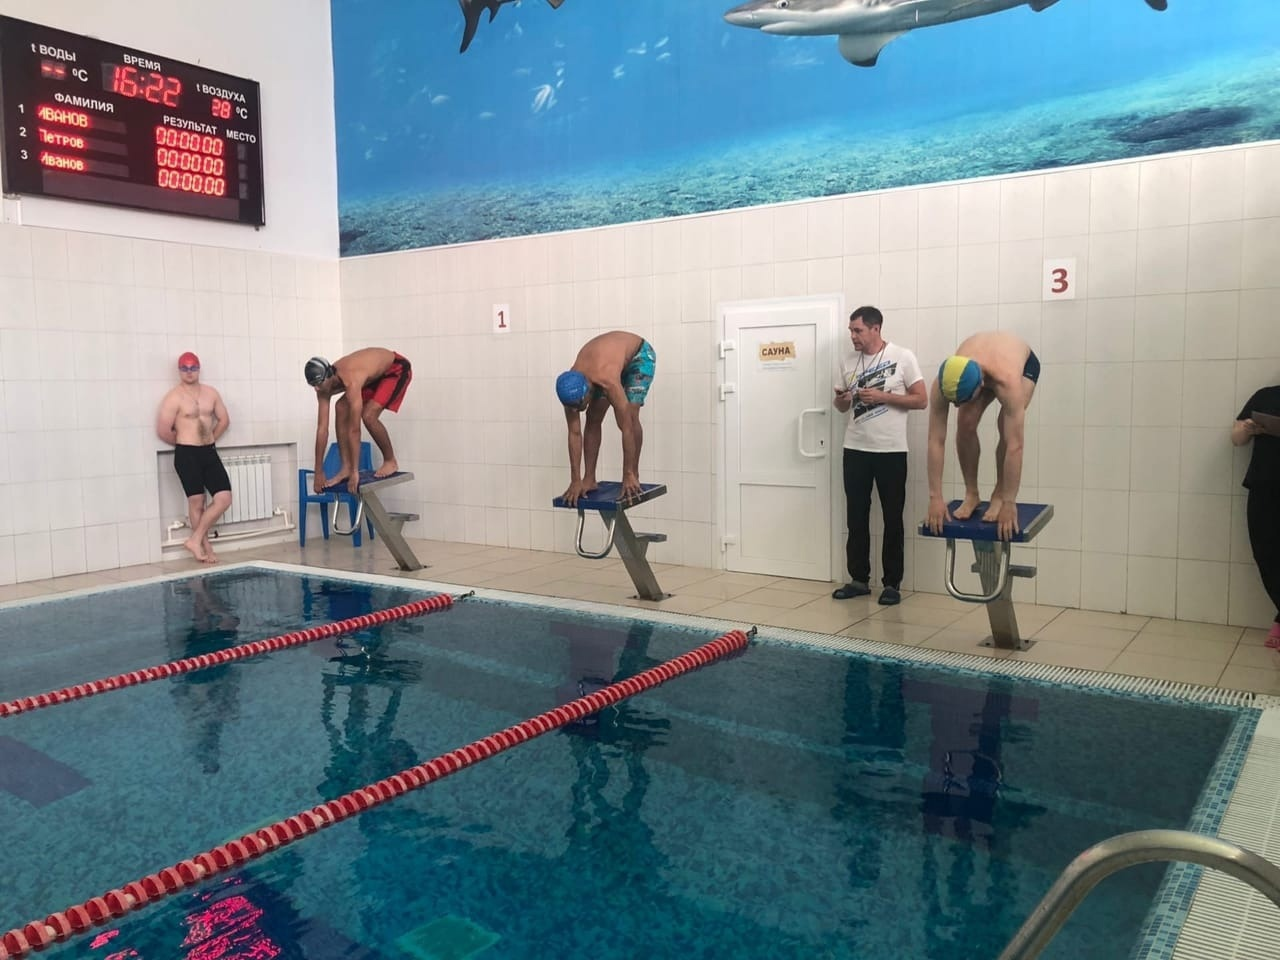 An Egyptian student won a prize at a swimming competition at Pitirim Sorokin Syktyvkar State University